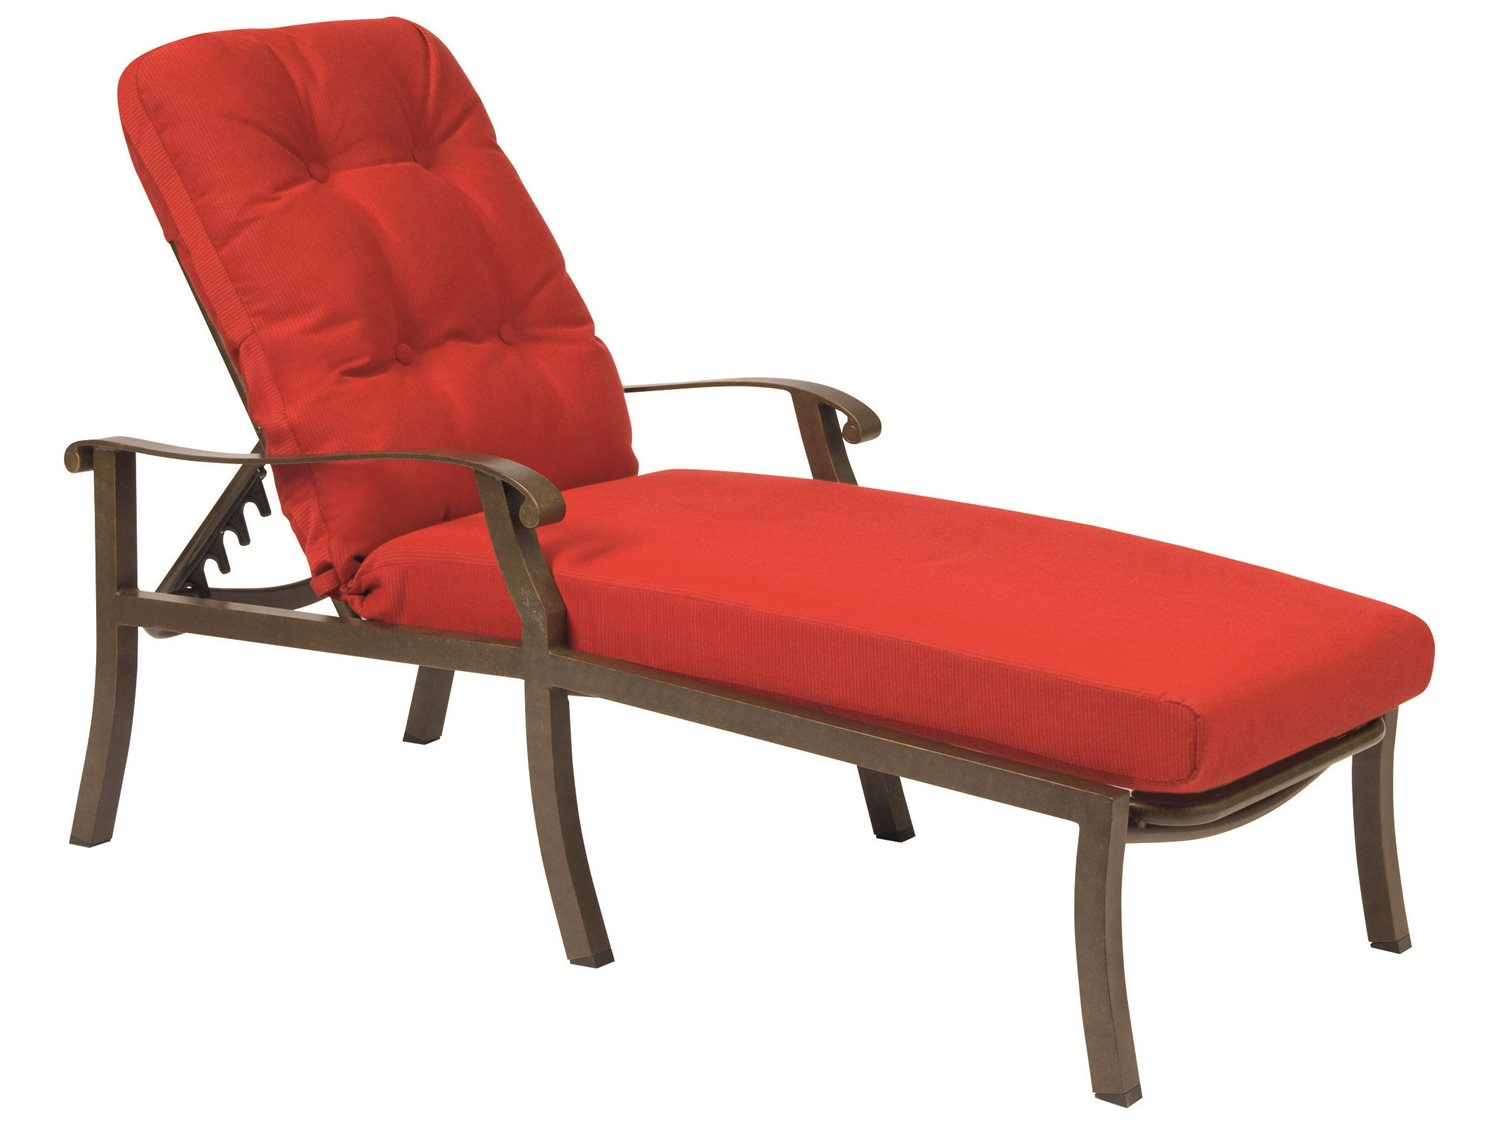 Woodard cortland cushion aluminum adjustable chaise lounge for Aluminium chaise lounge